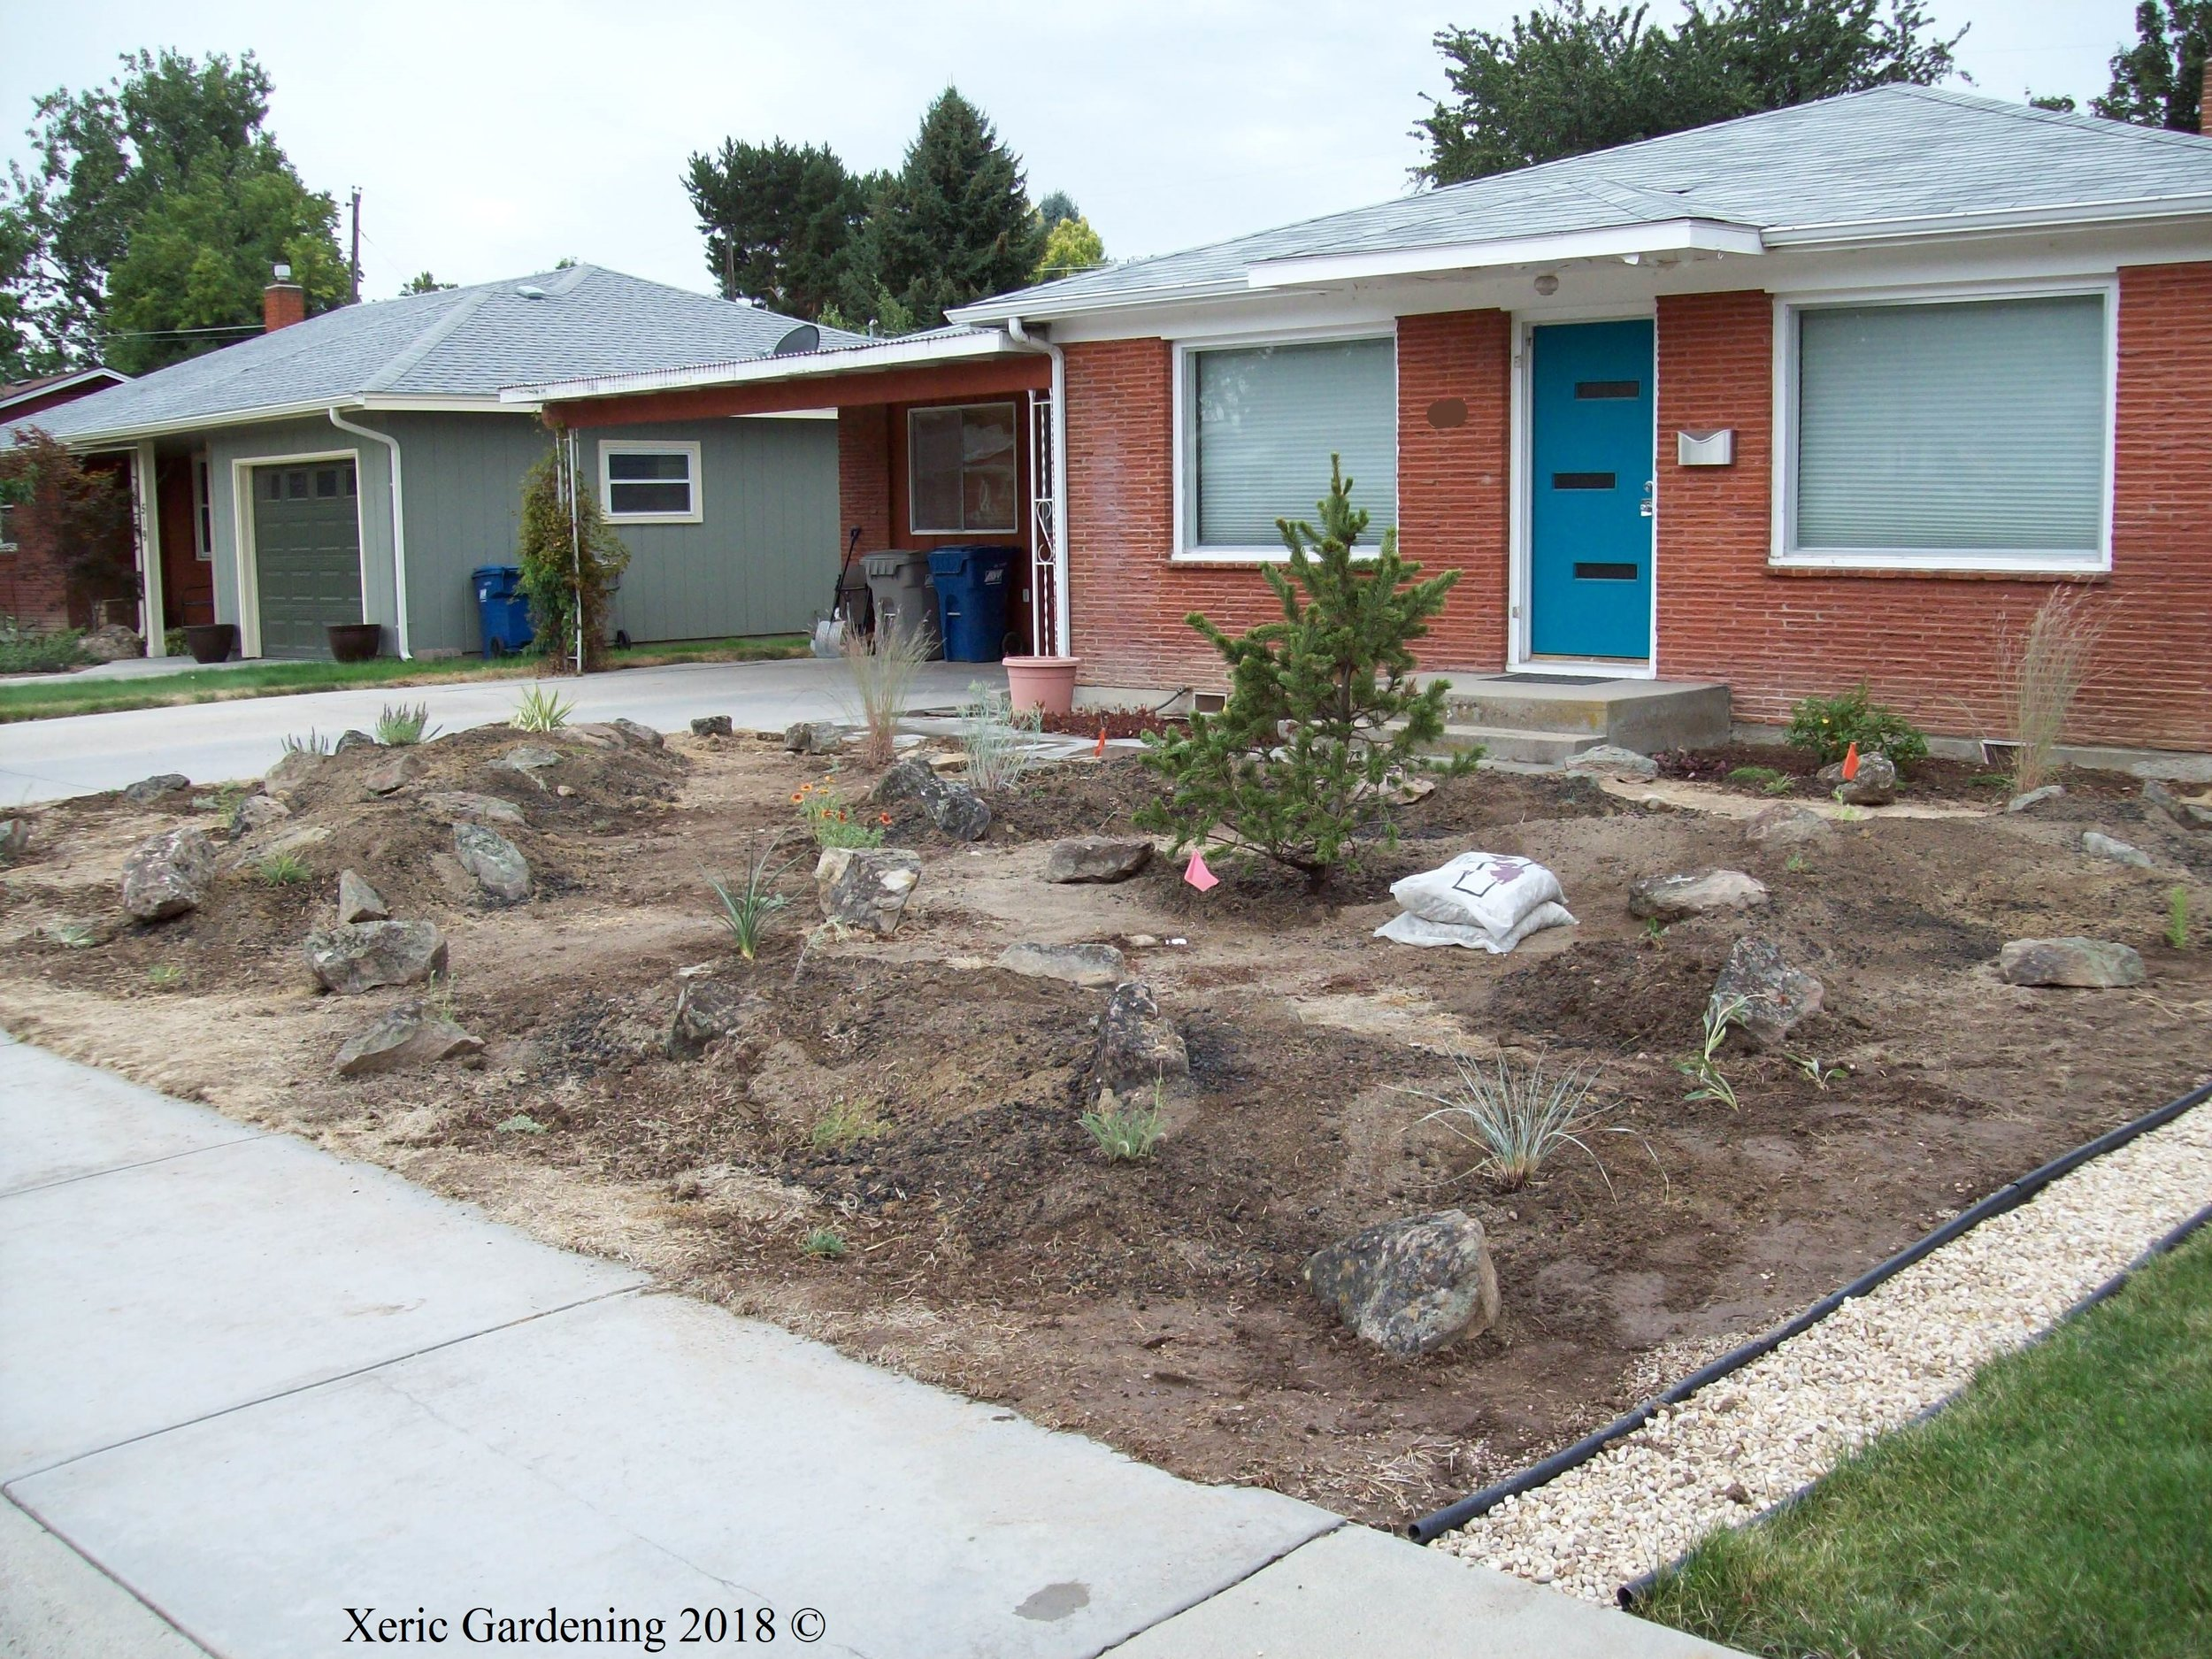 YEAR 2  As plants were going in, we had to create a border with the neighbor's lawn to keep grass from creeping in (notice edging in bottom right corner).